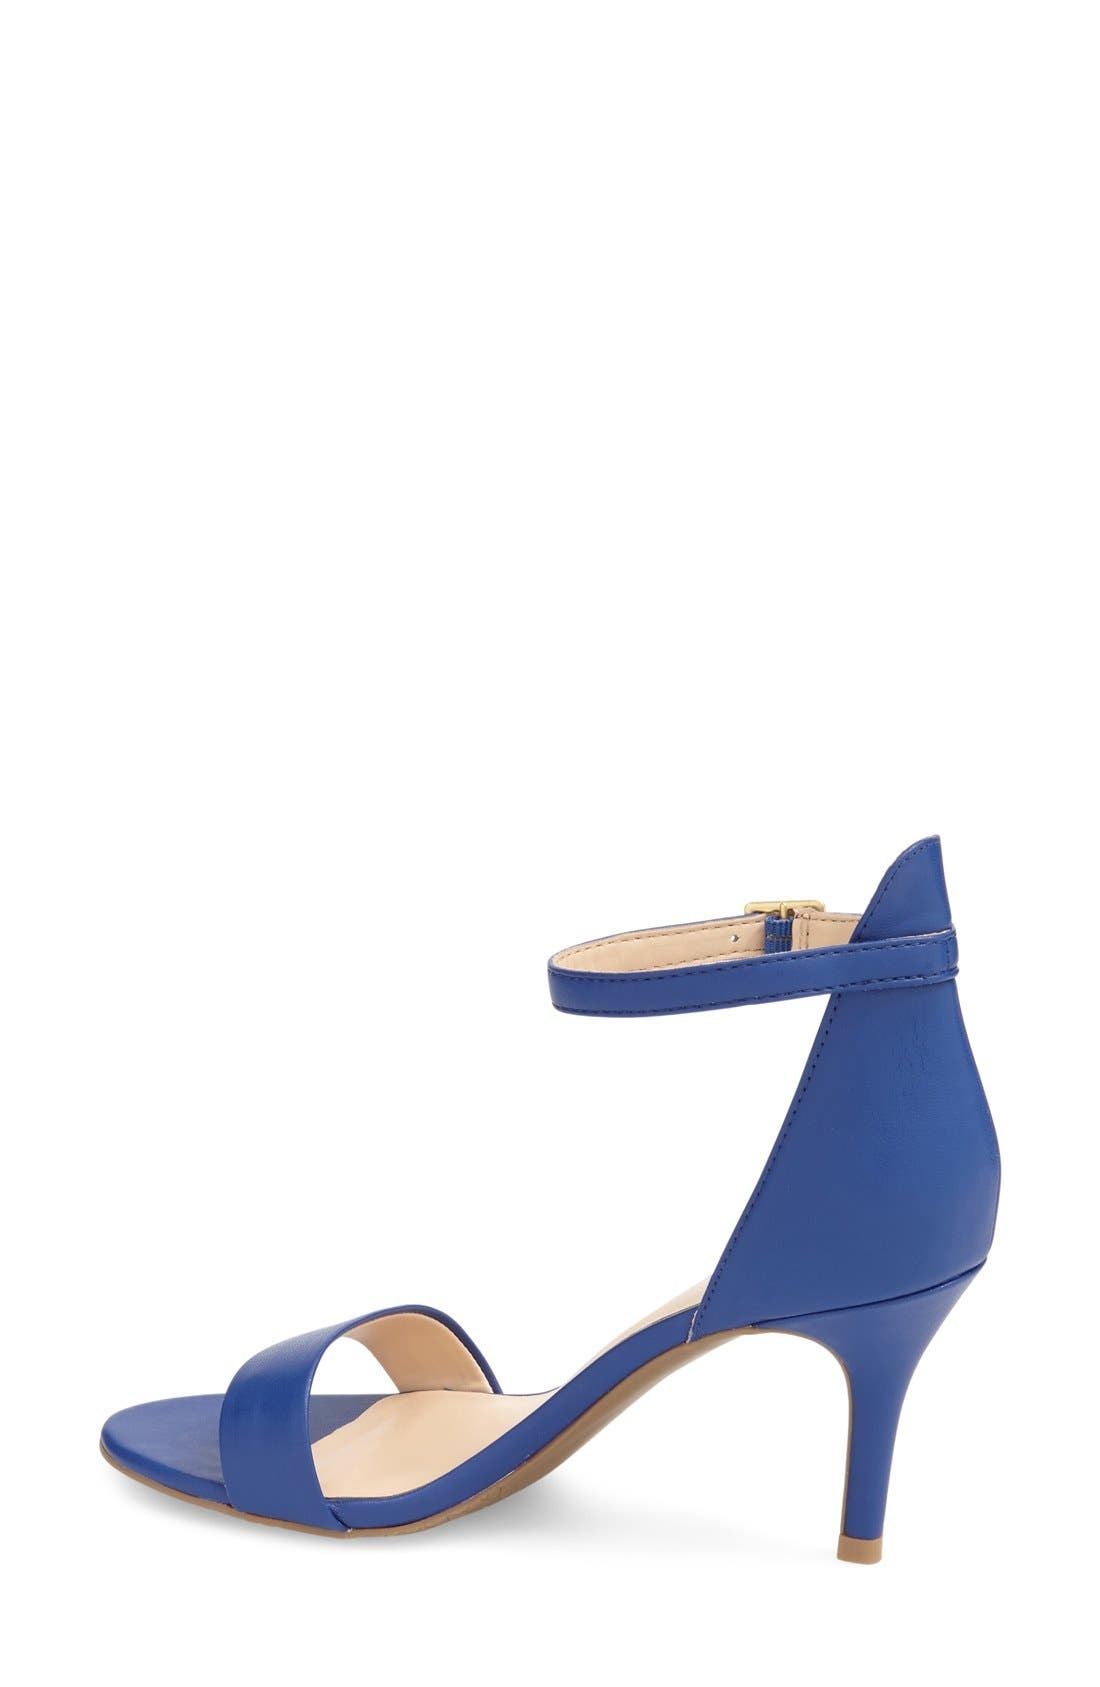 'Luminate' Open Toe Dress Sandal,                             Alternate thumbnail 131, color,